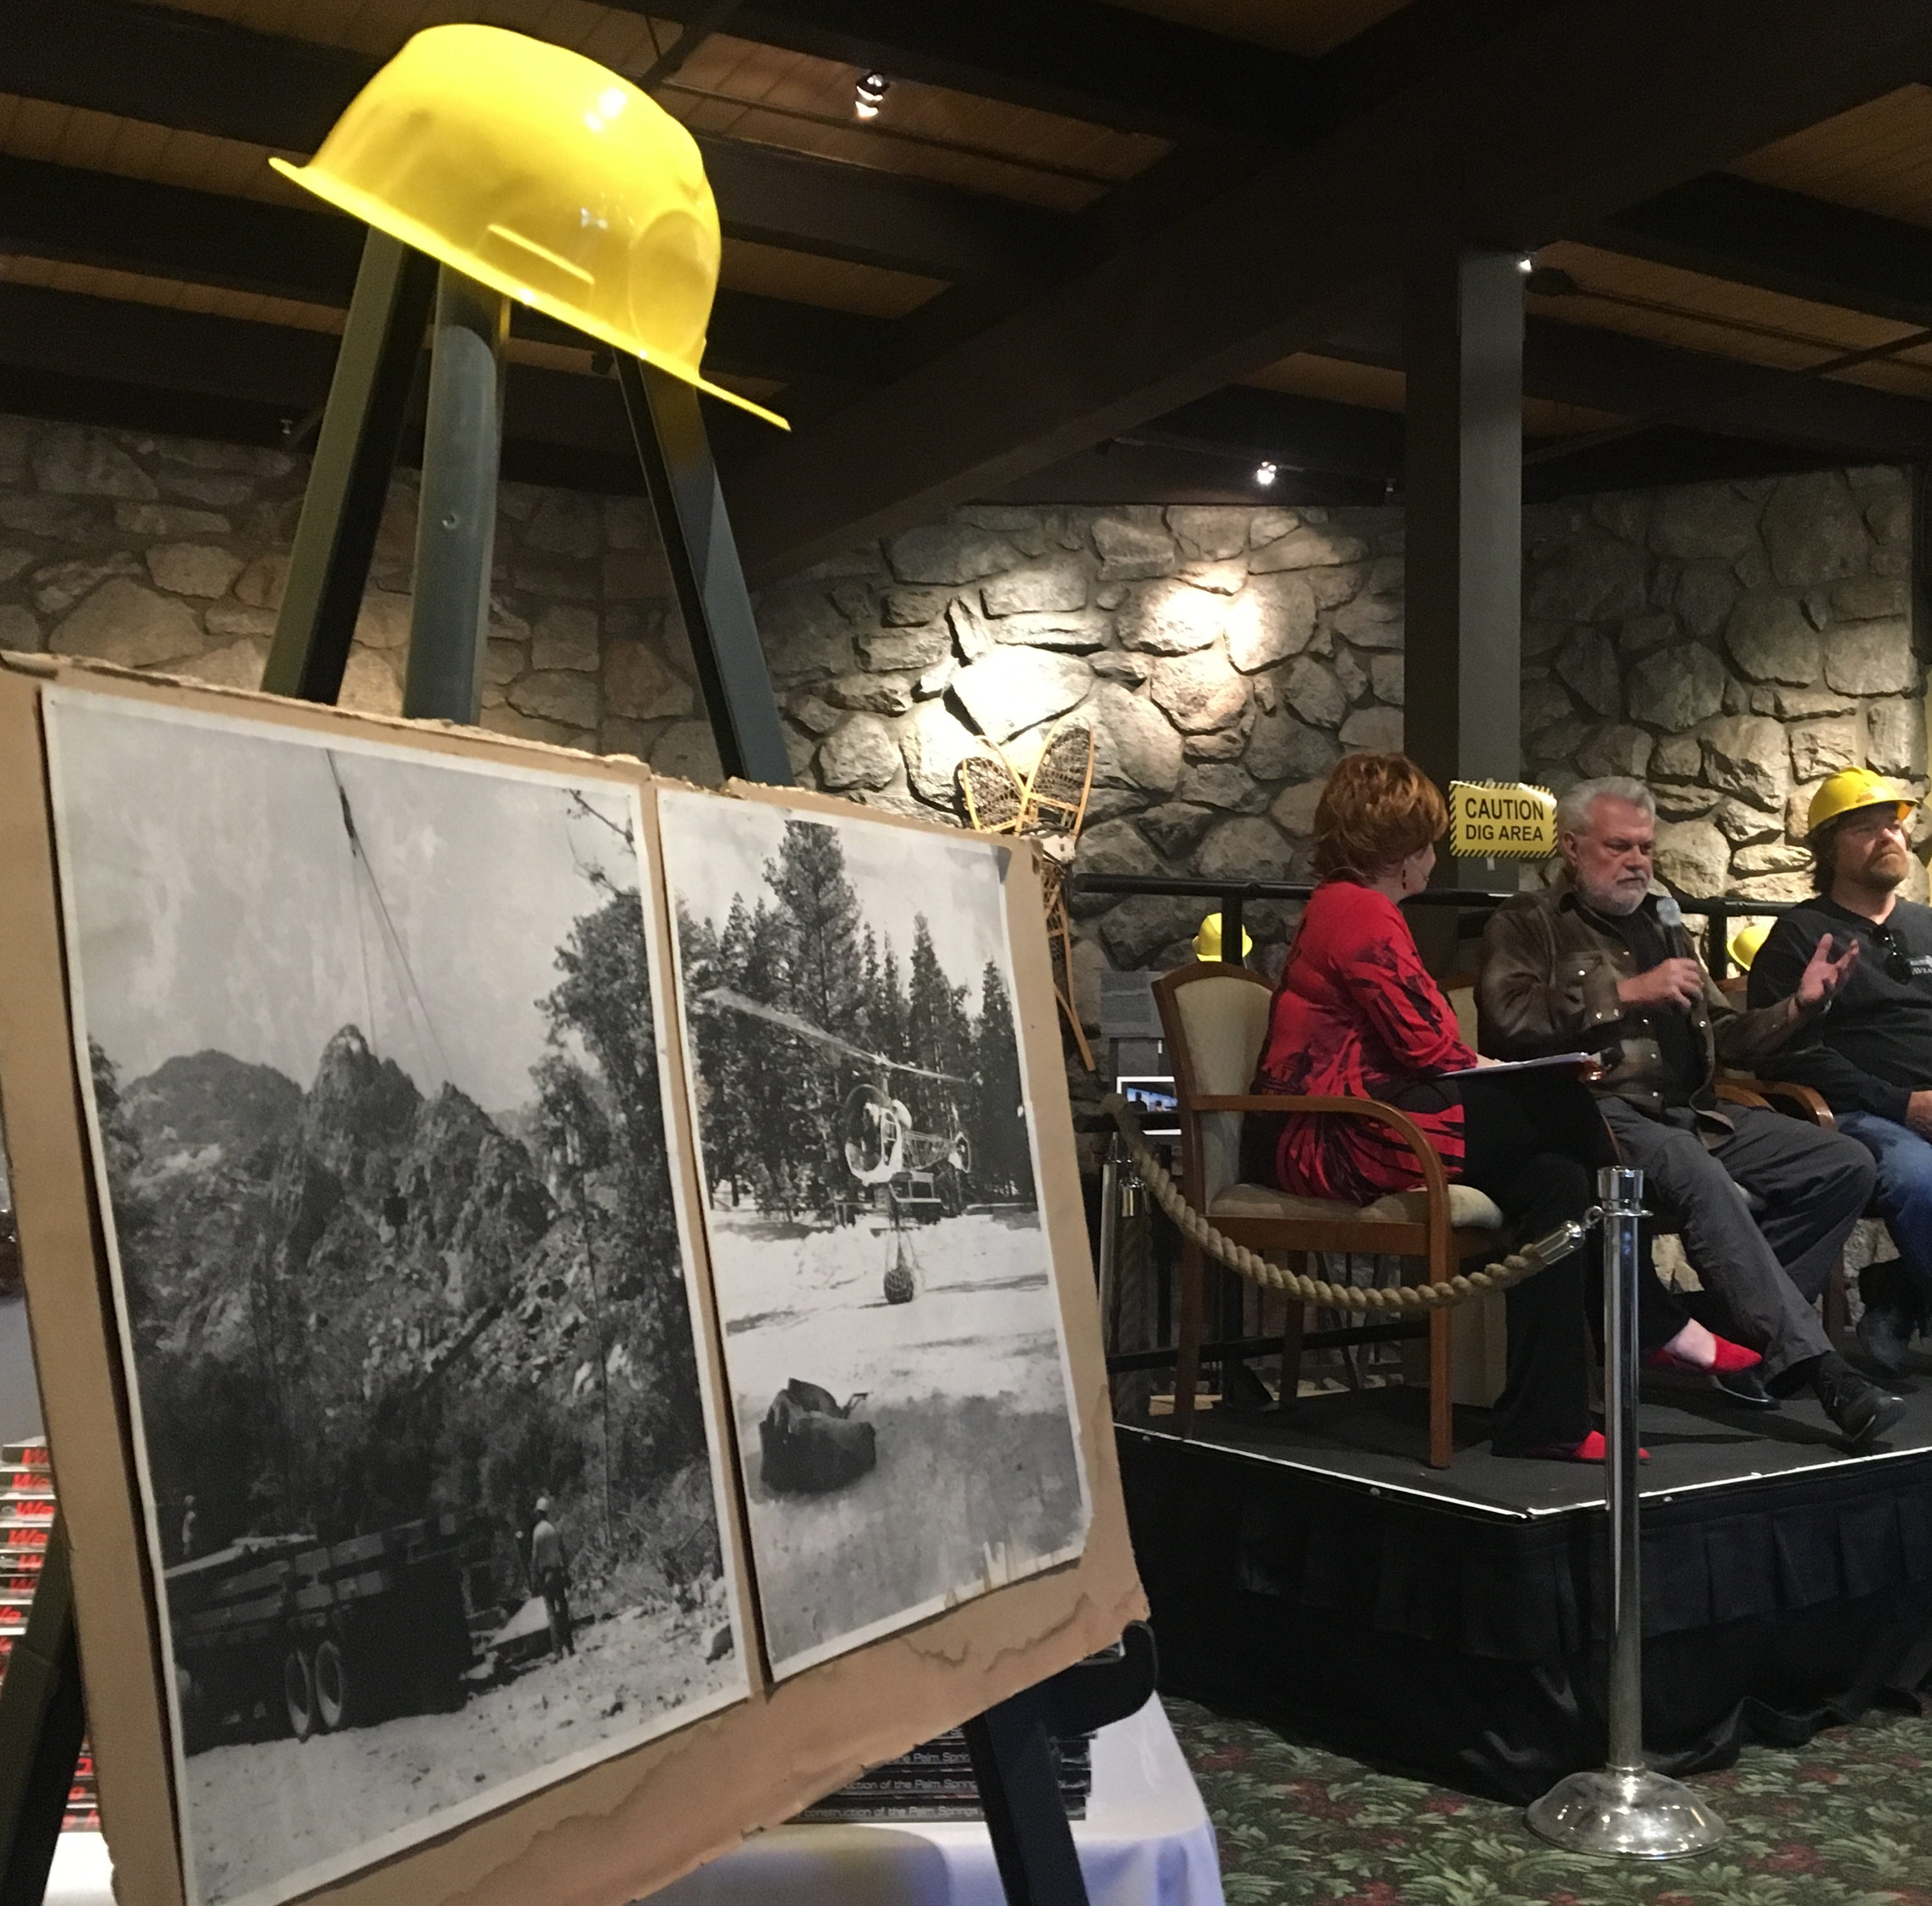 Palm Springs Aerial Tramway opened last week and two with historical ties discuss its origin